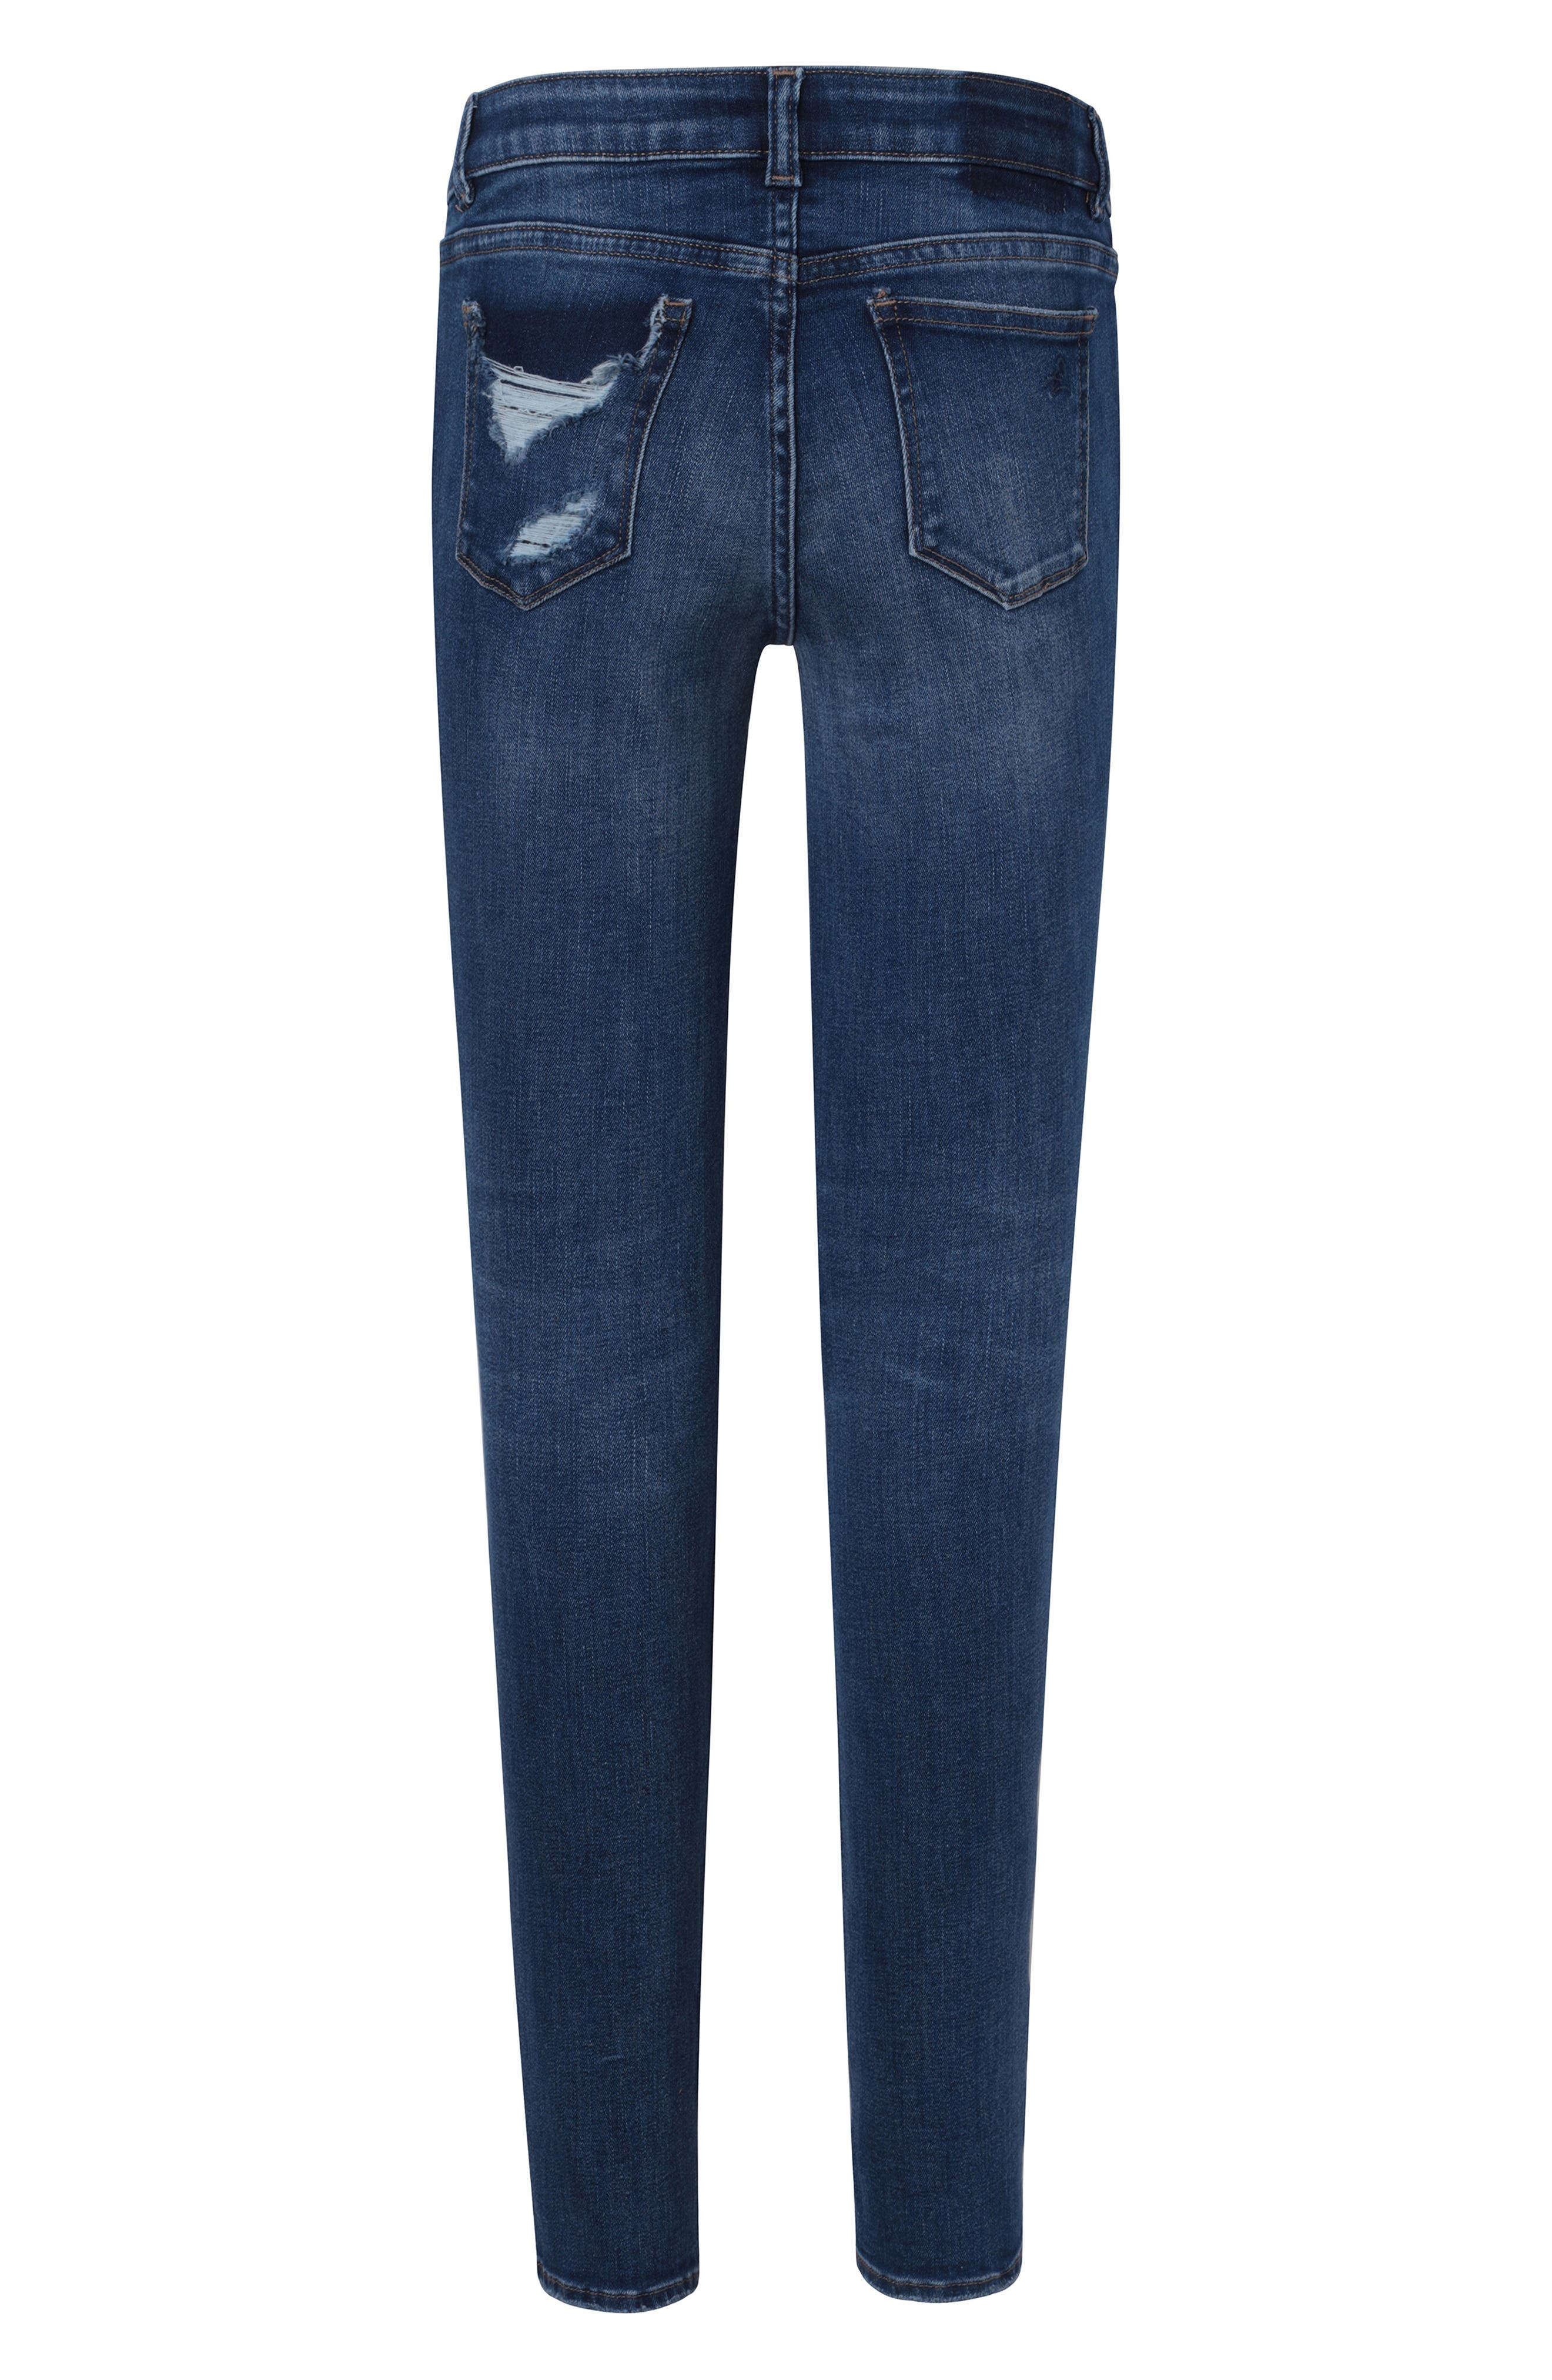 Distressed Skinny Jeans,                             Alternate thumbnail 2, color,                             ROYCE